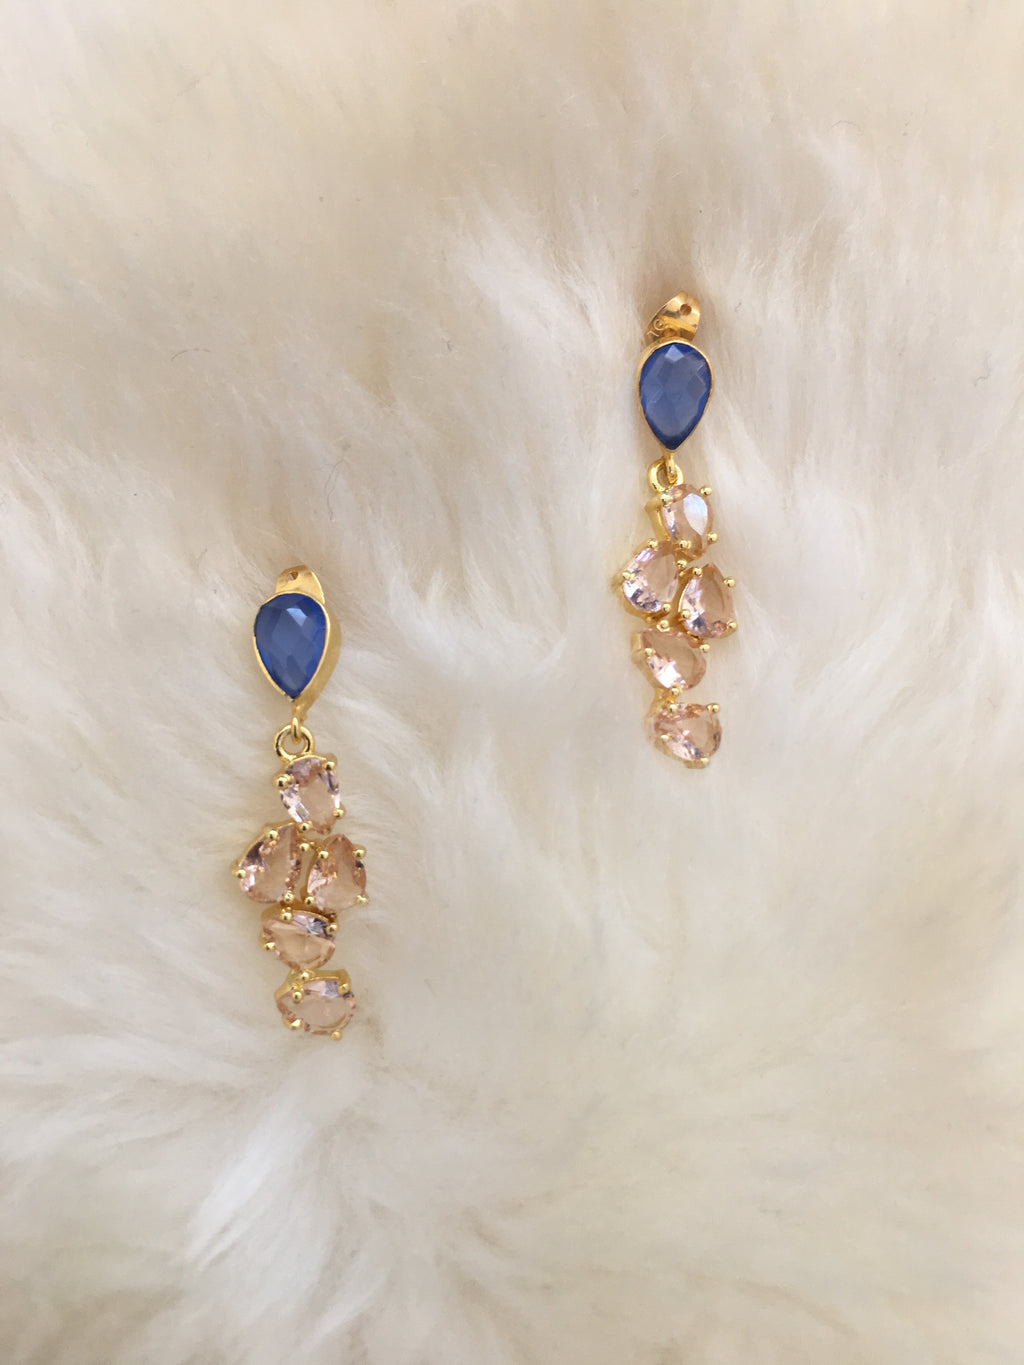 Paloma earrings